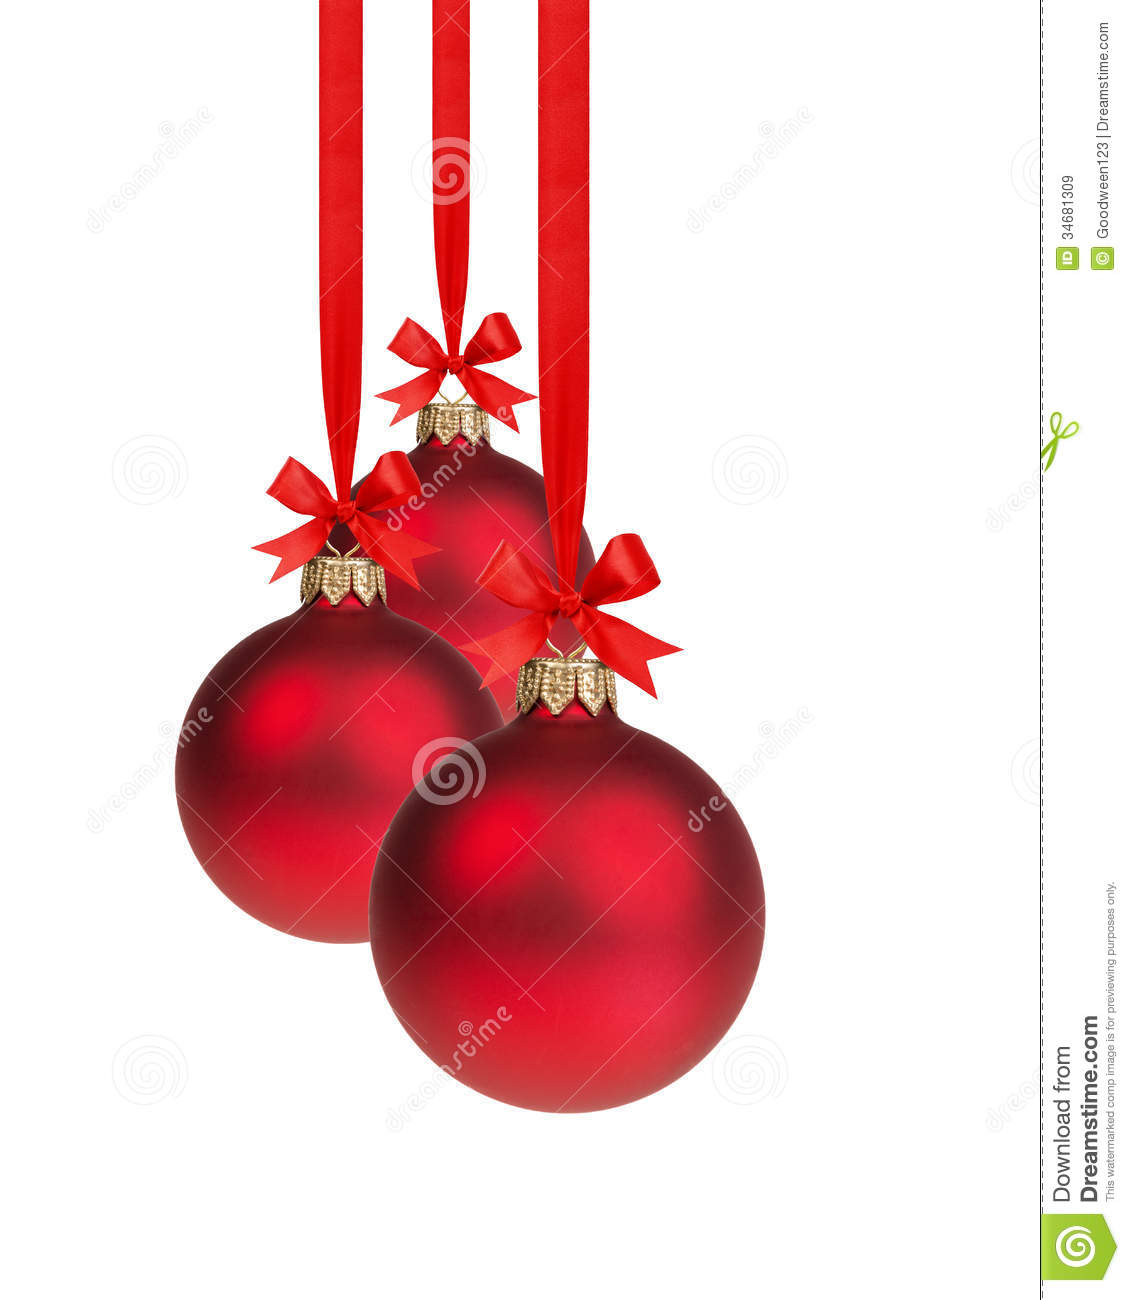 Composition from three red christmas balls hanging on ribbon stock image image 34681309 - Hanging christmas ornaments ...